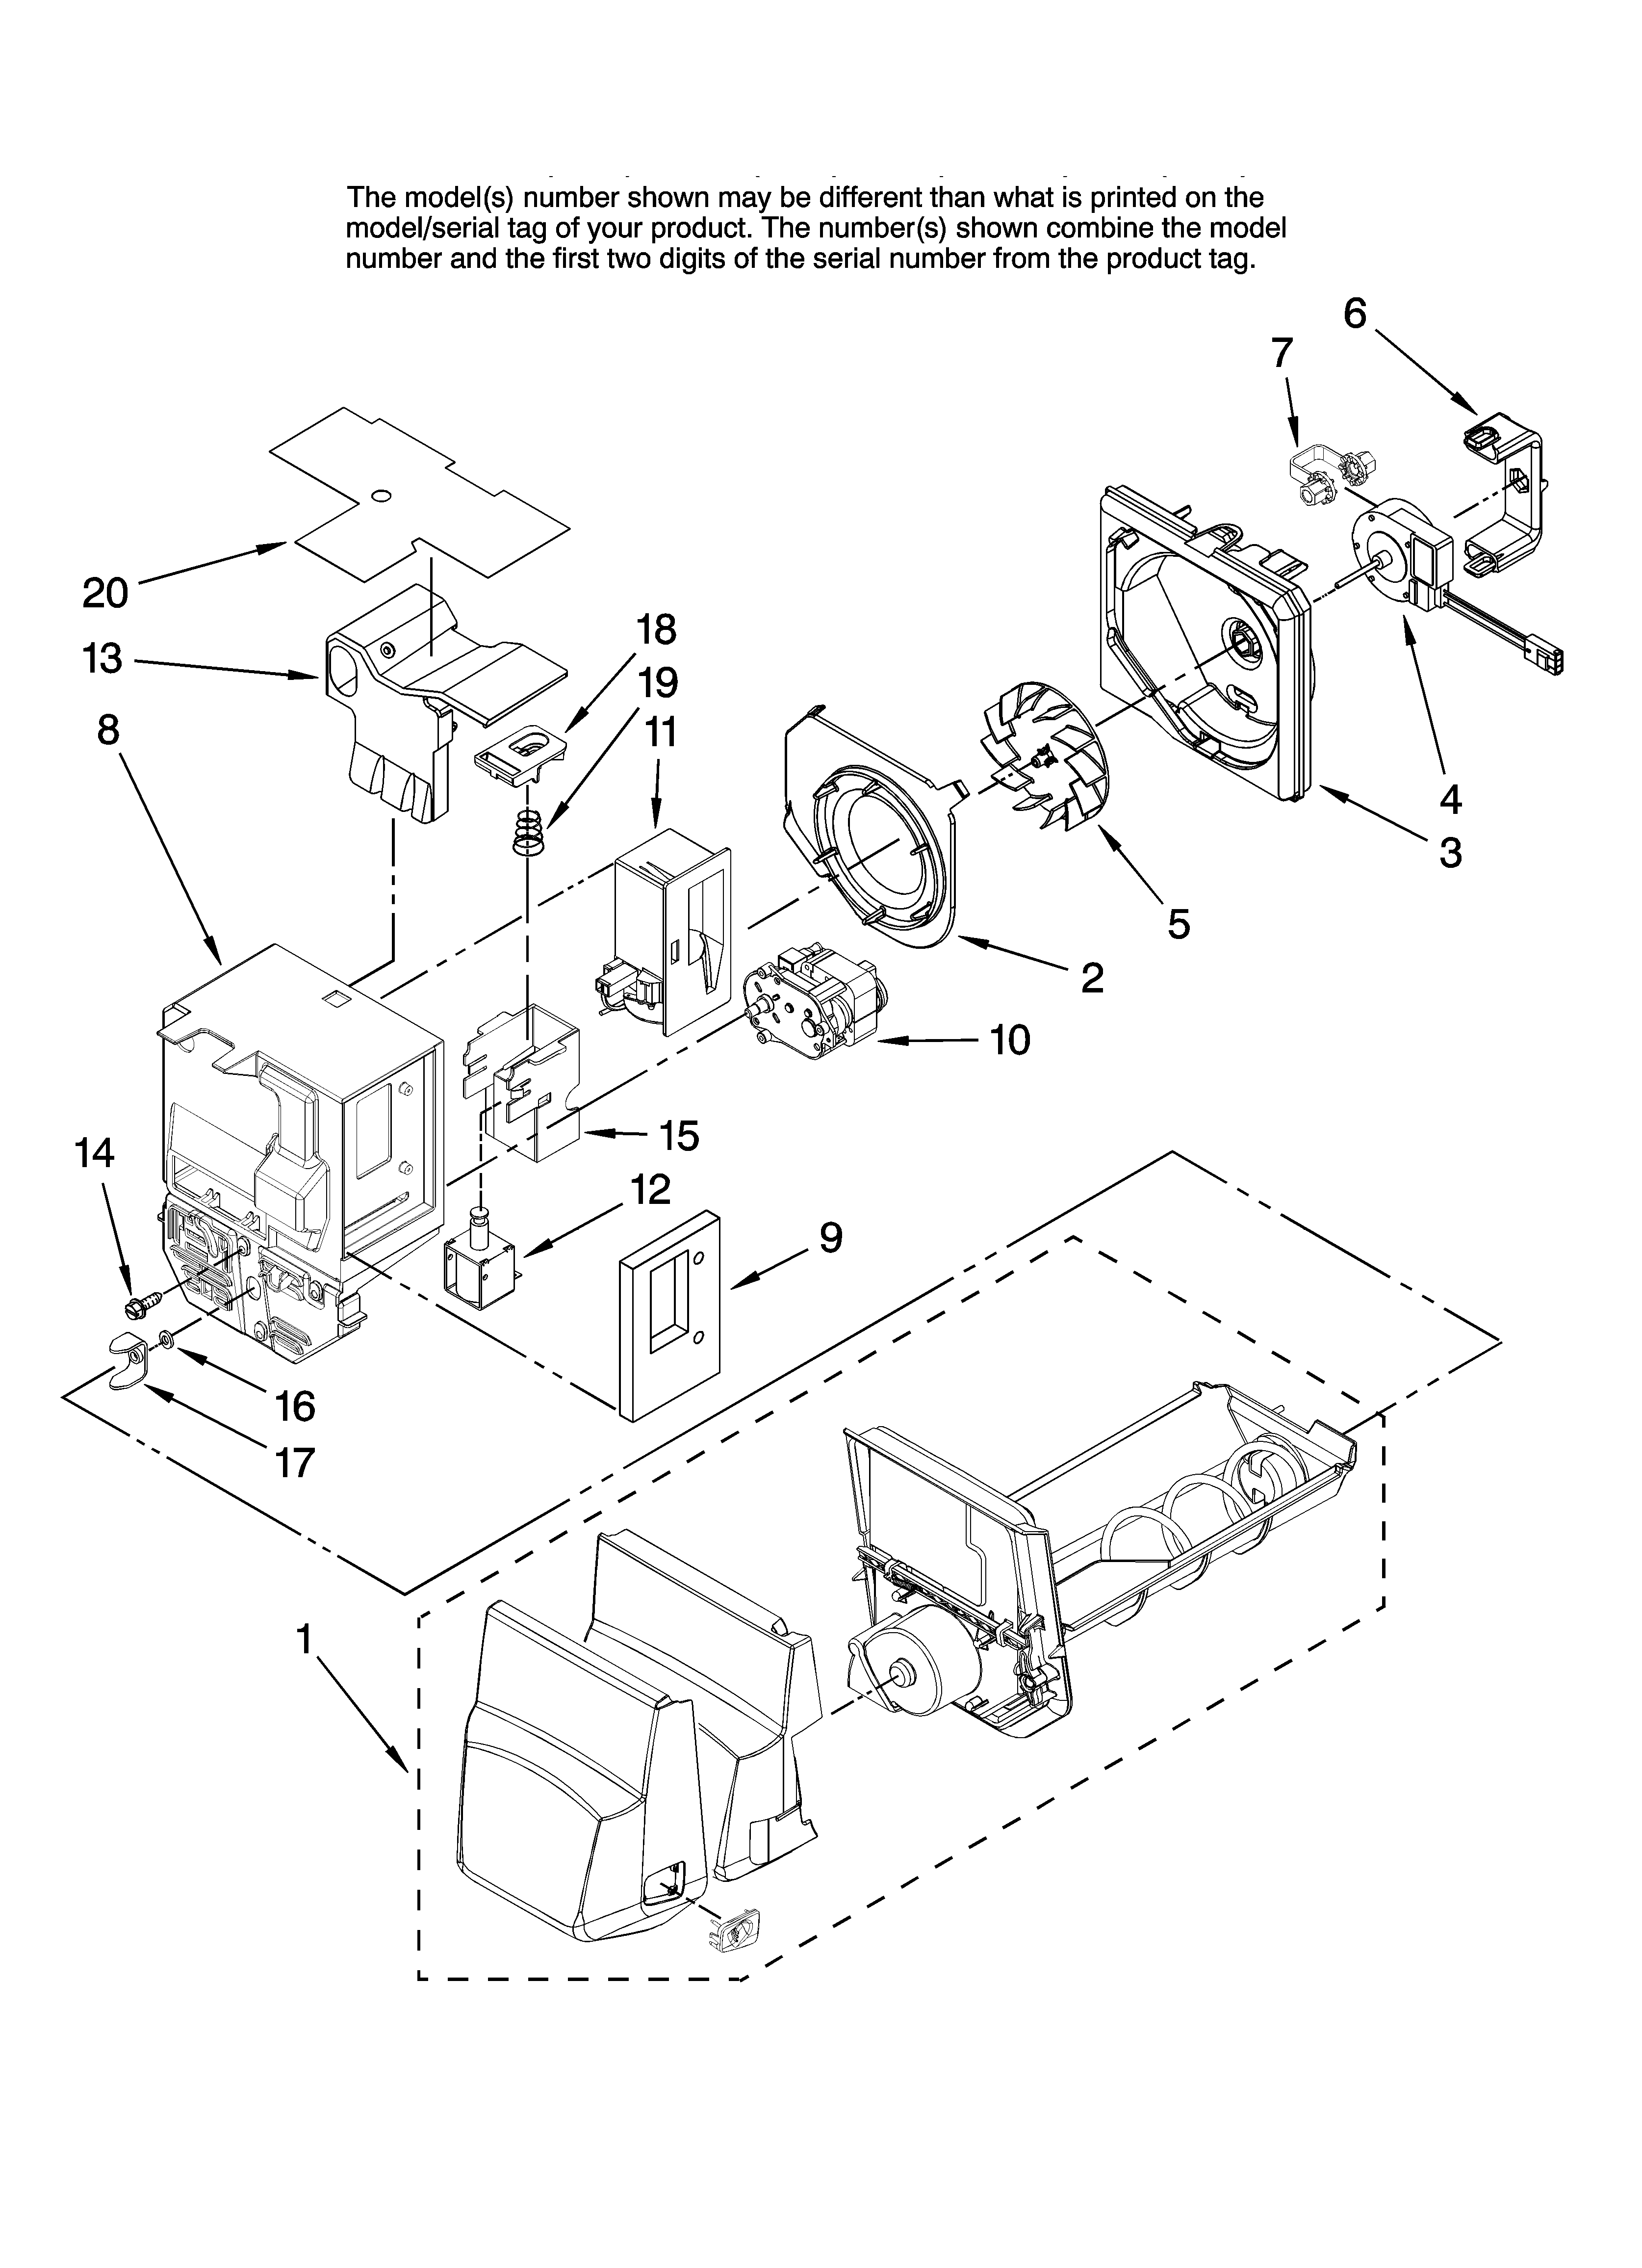 Jenn-Air JFI2089AEP10 motor and ice container parts diagram